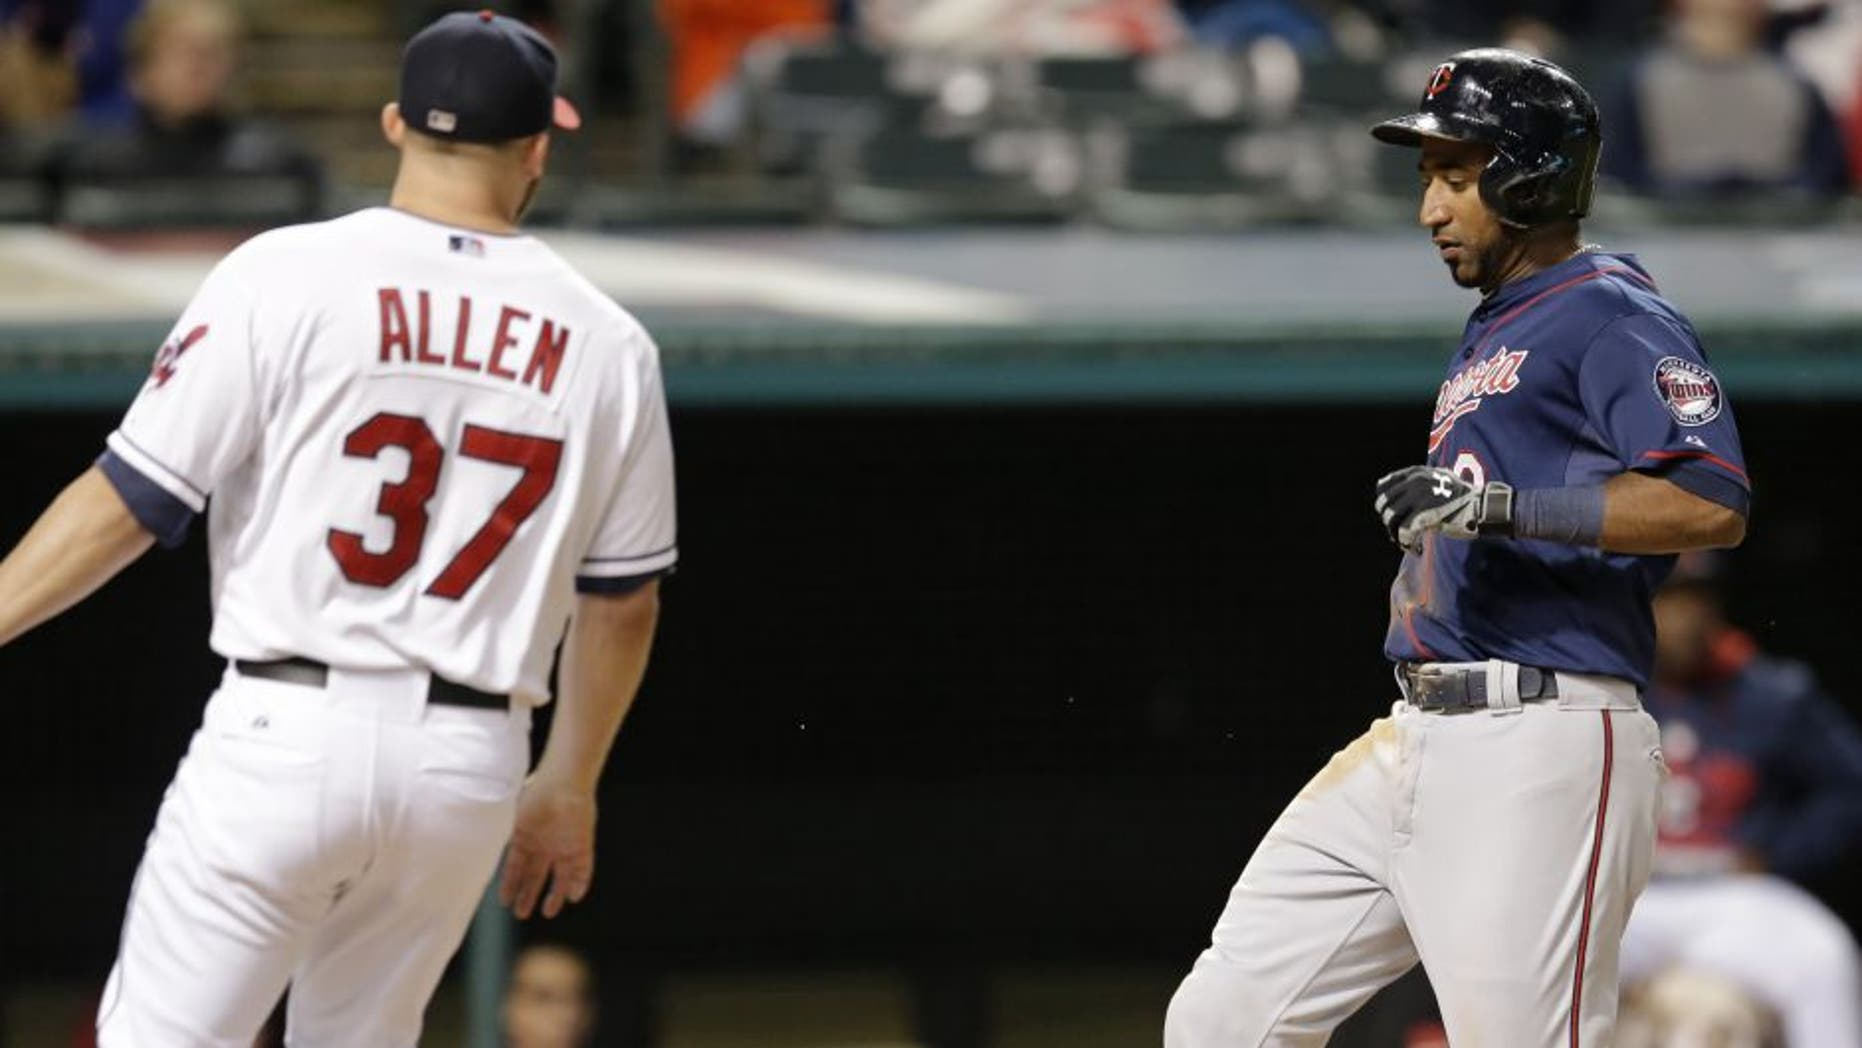 Minnesota Twins' Eduardo Nunez scores on a wild pitch by Cleveland Indians relief pitcher Cody Allen in the ninth inning